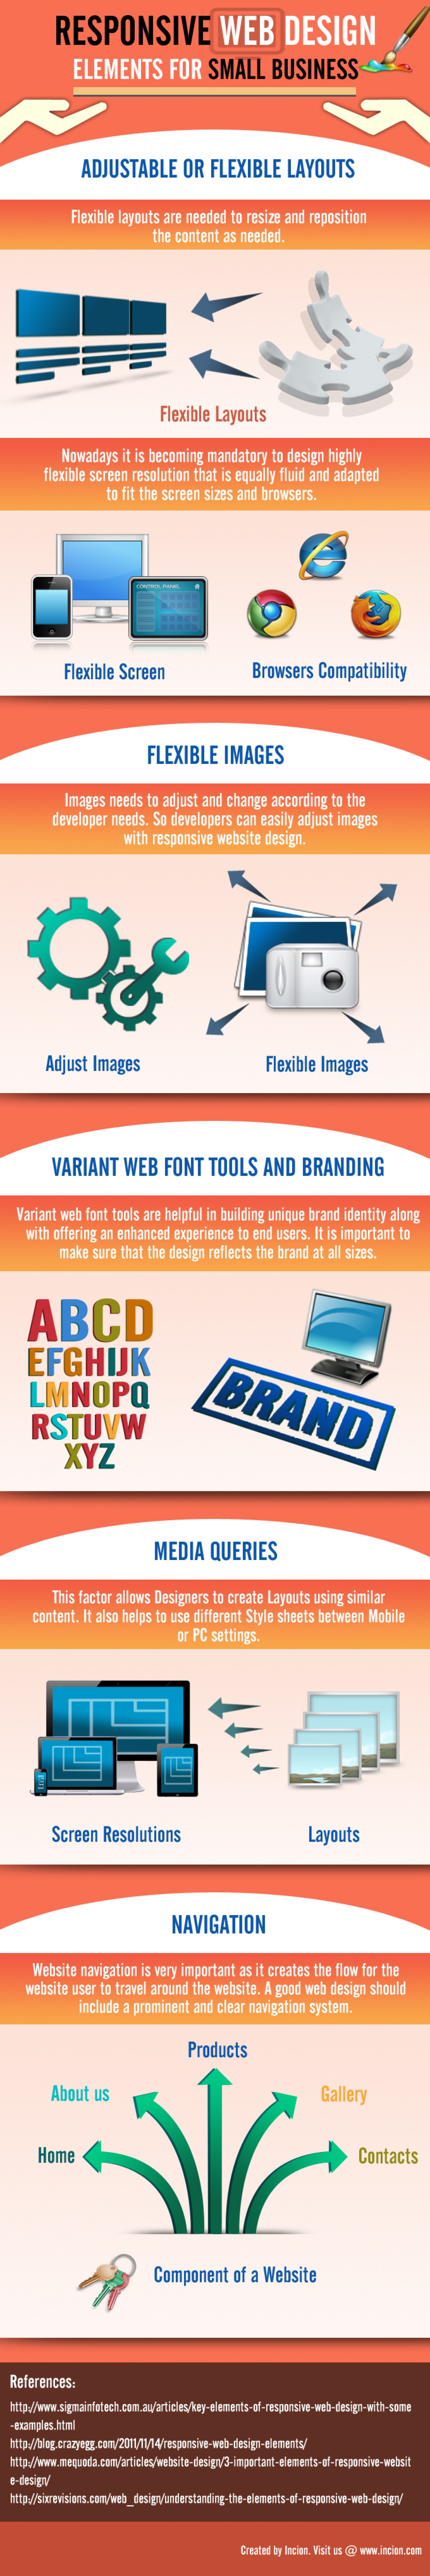 responsive-web-design-for-small-business_5152b9d358411_w1500